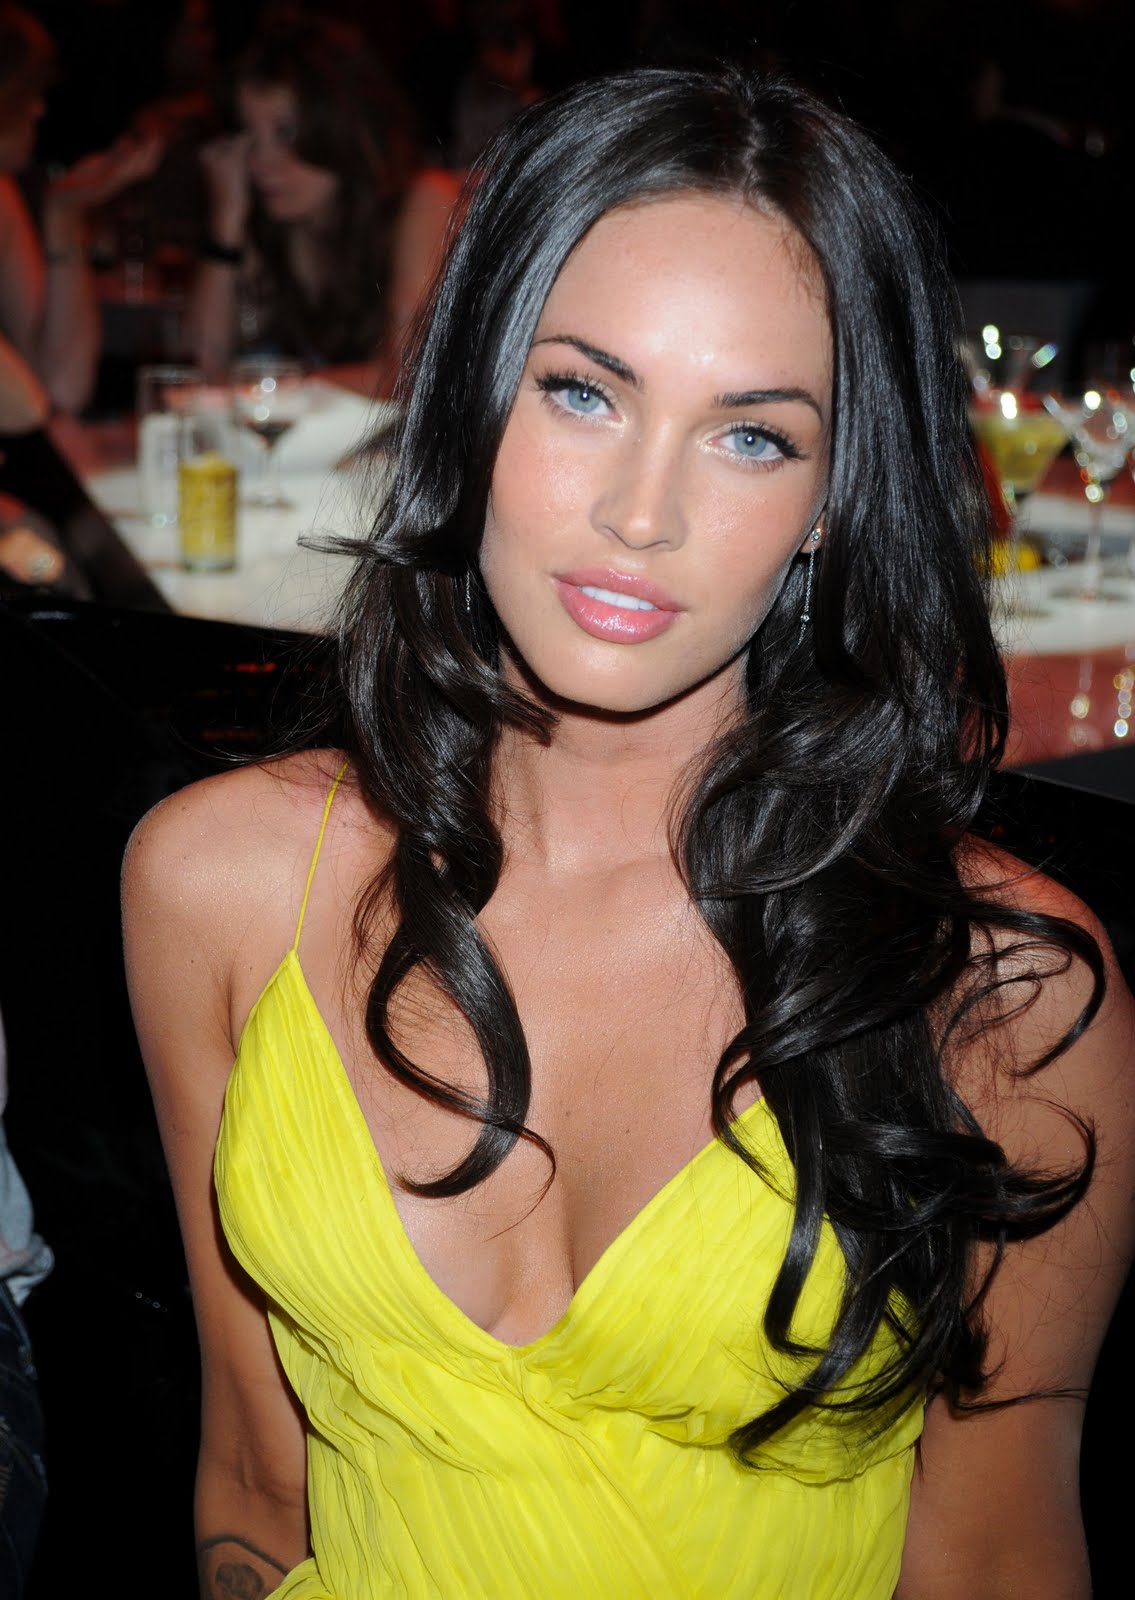 Megan Fox to Play April O'Neil in 'Ninja Turtles'